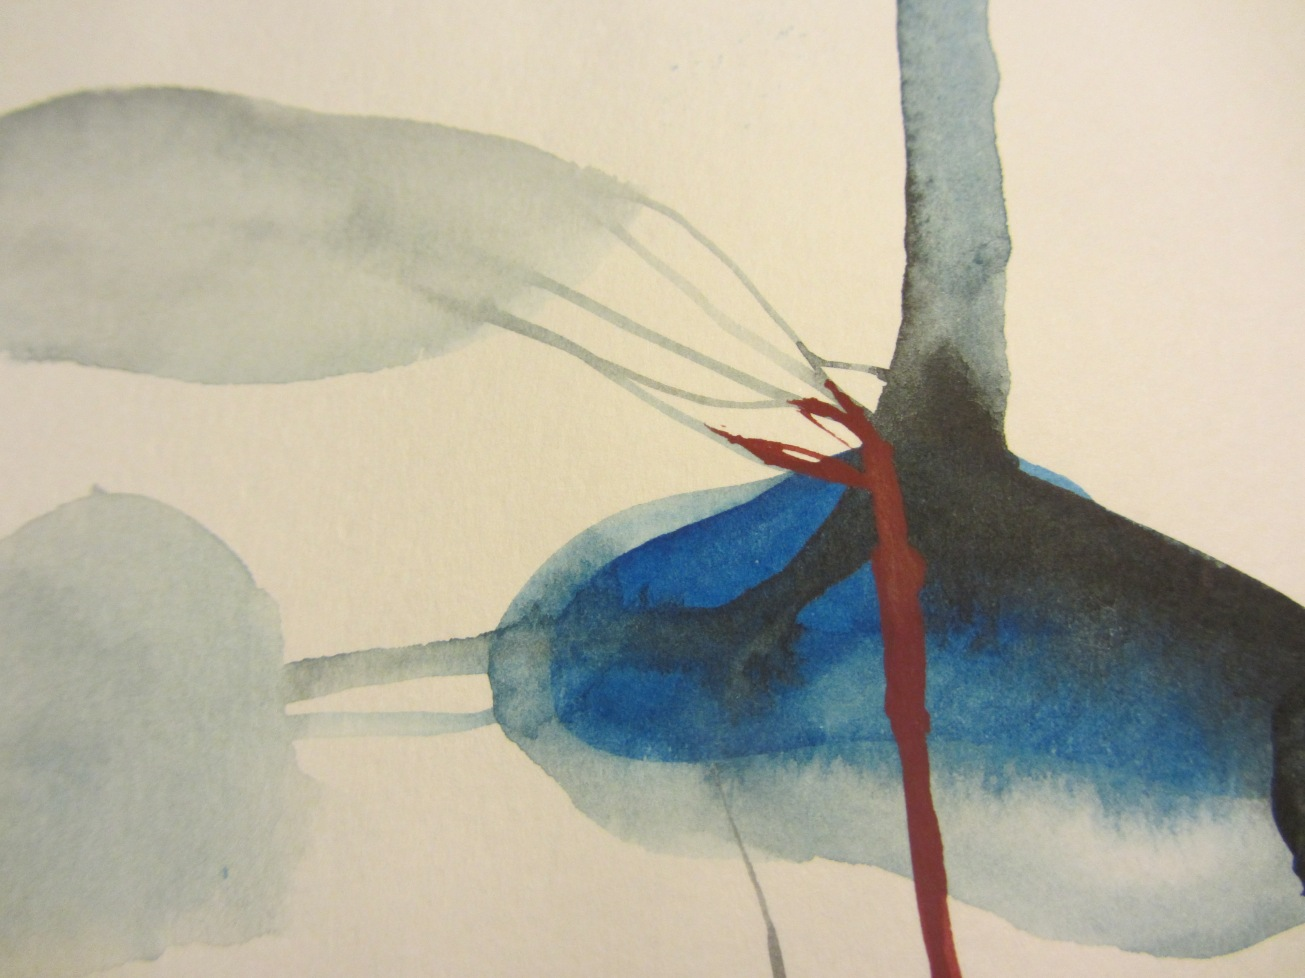 sketchbook (buenos aires) - nudos, watercolours in a moleskine, laura barbuto, 2012.